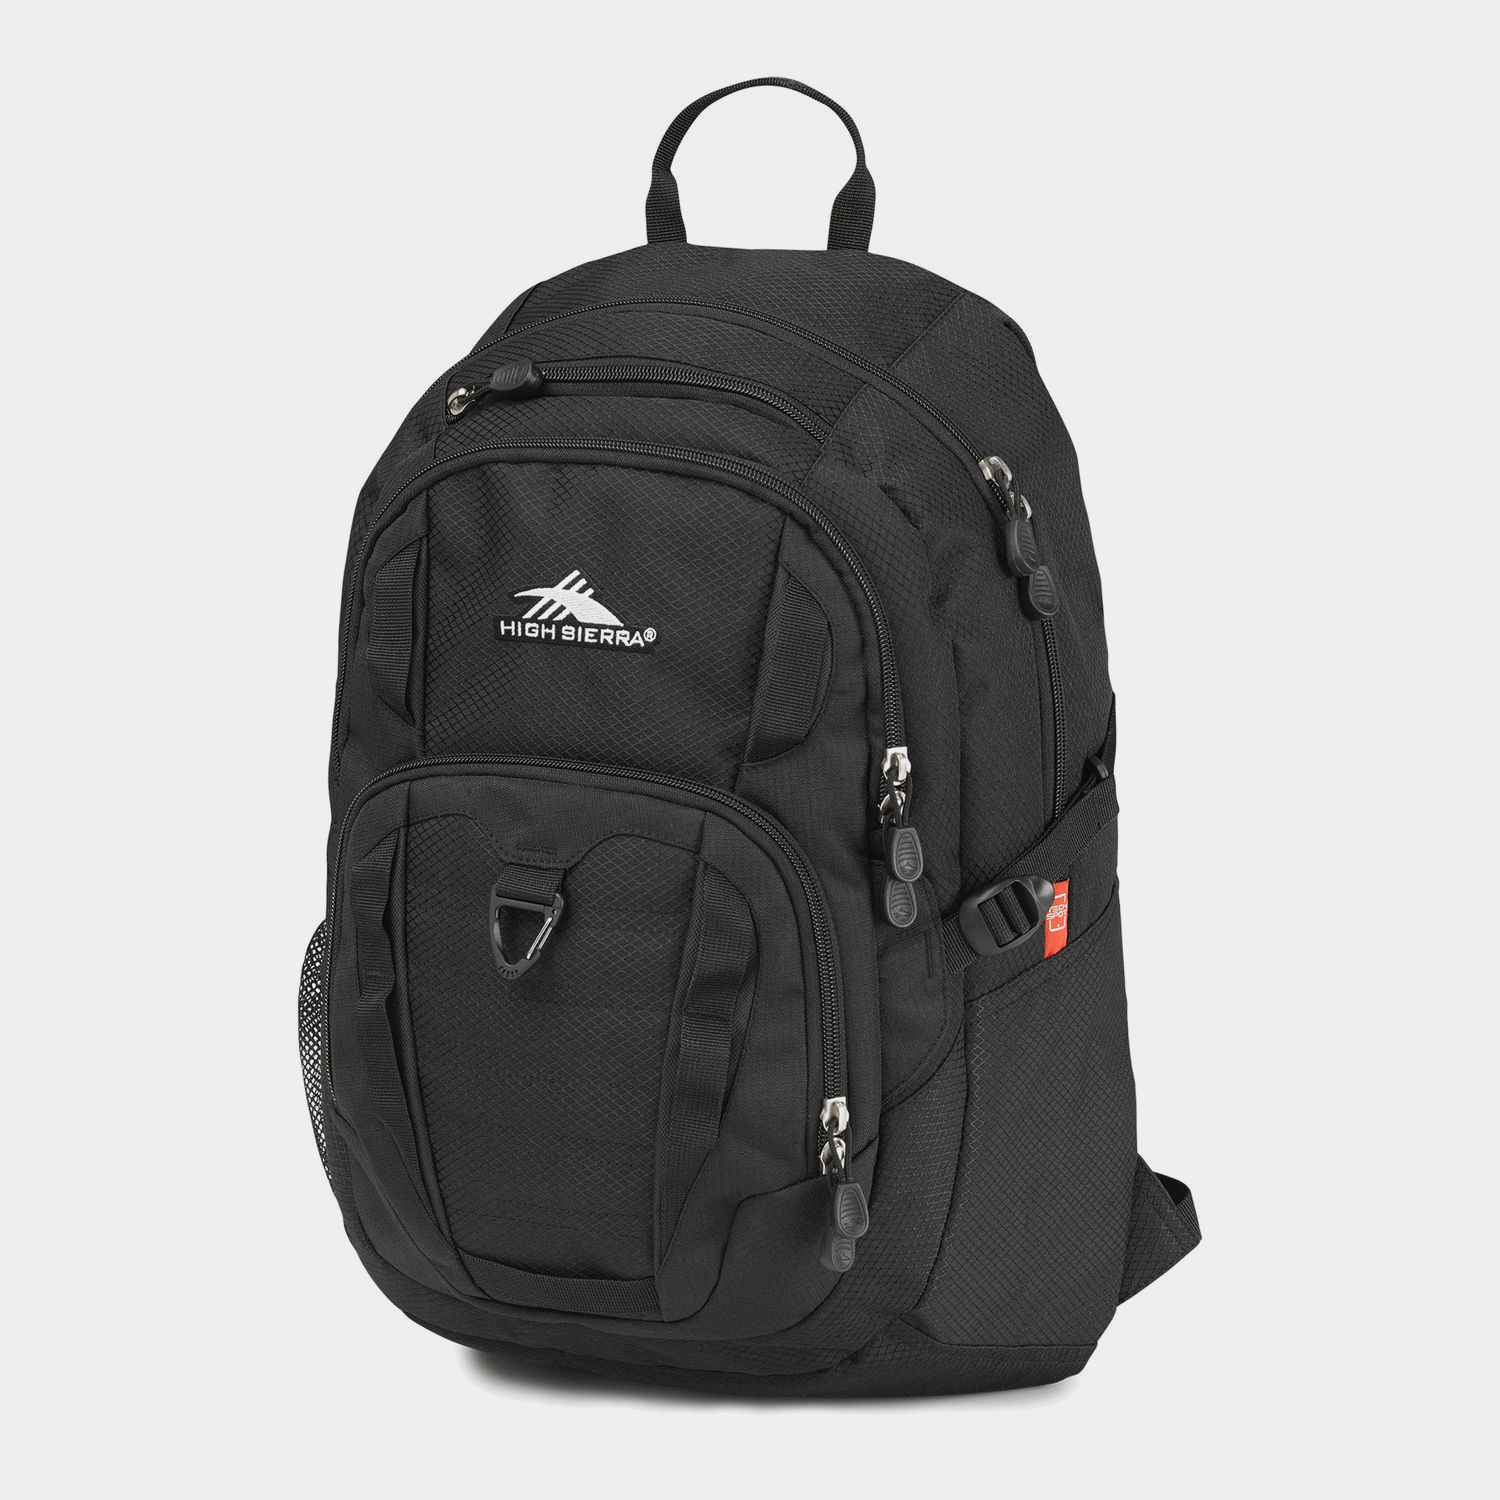 209b45edd High Sierra Ryler Backpack – Elegant Bag